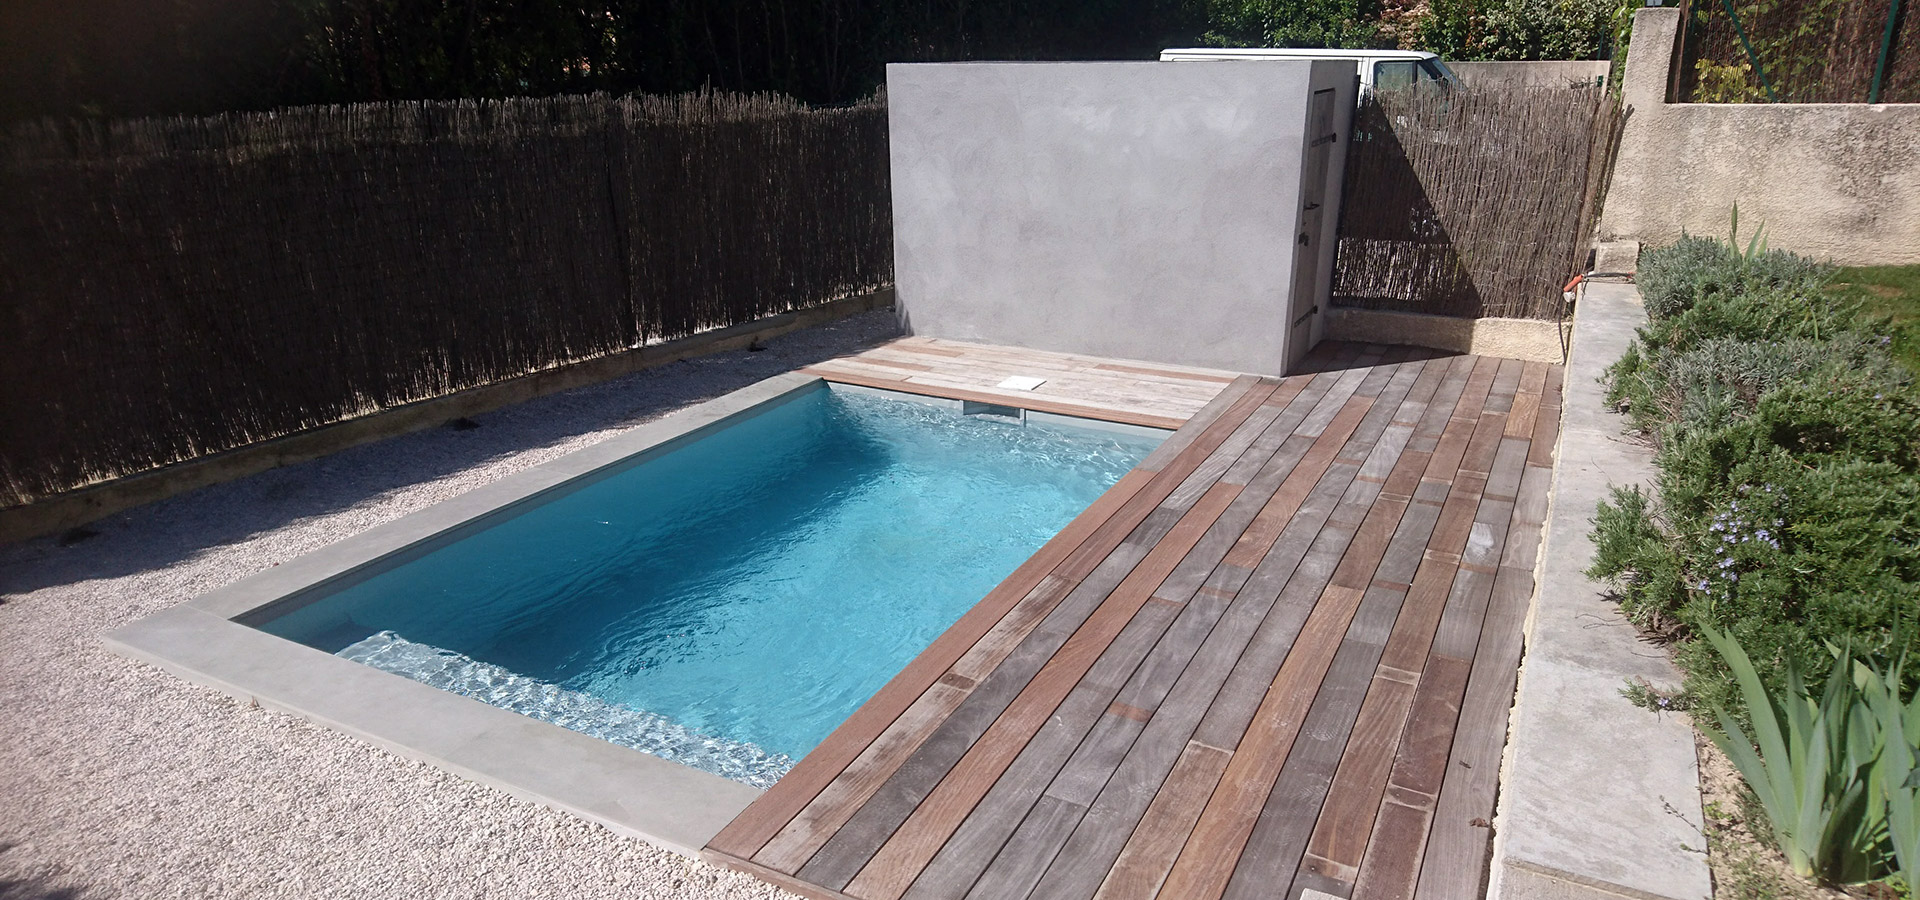 Construction piscine et am nagement ext rieur puyricard for Amenagement piscine exterieur